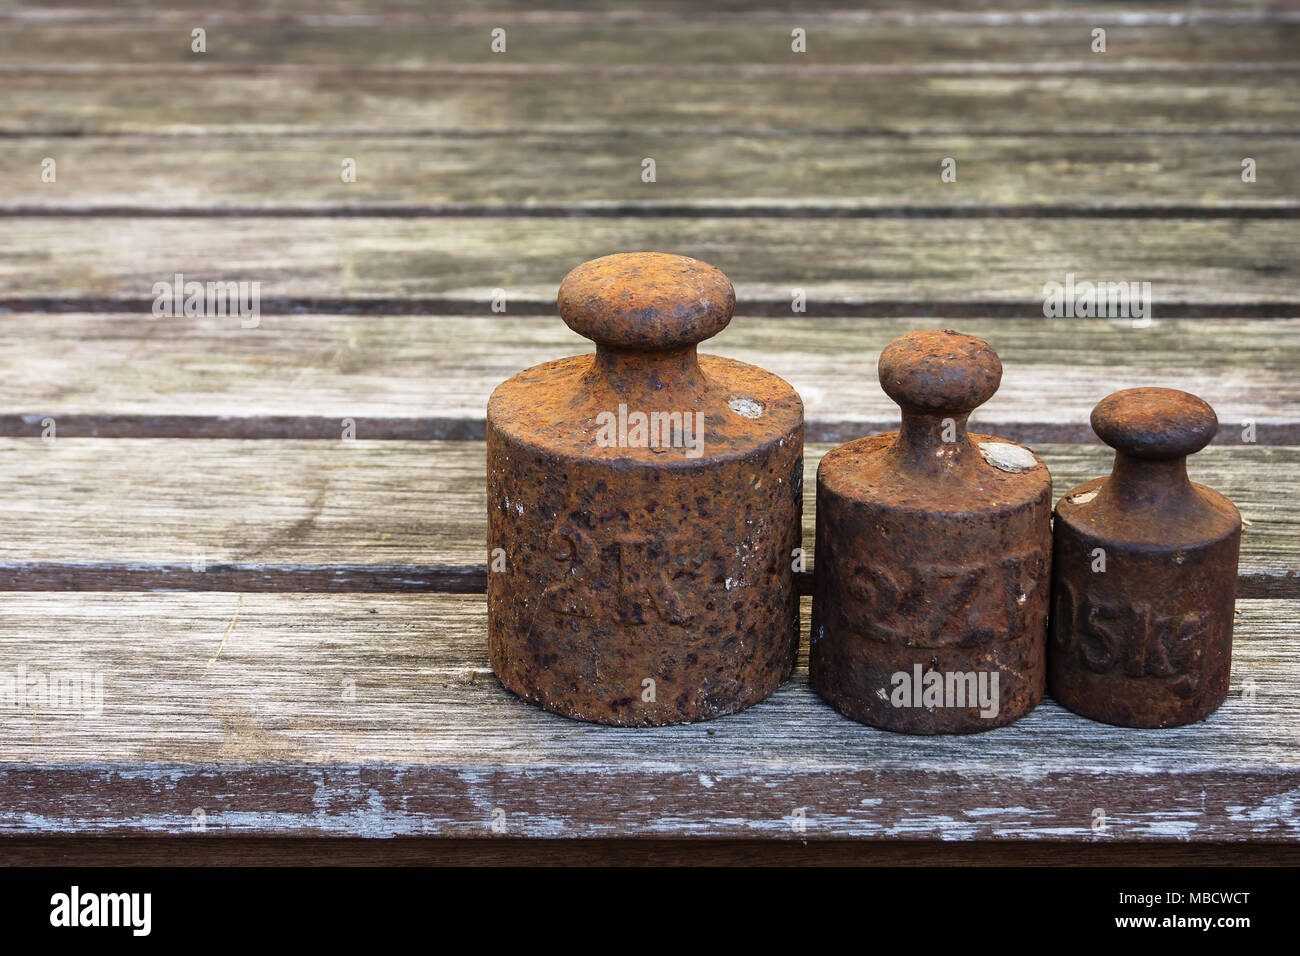 old weight tools. Rusty instruments for accurate measurements - Stock Image